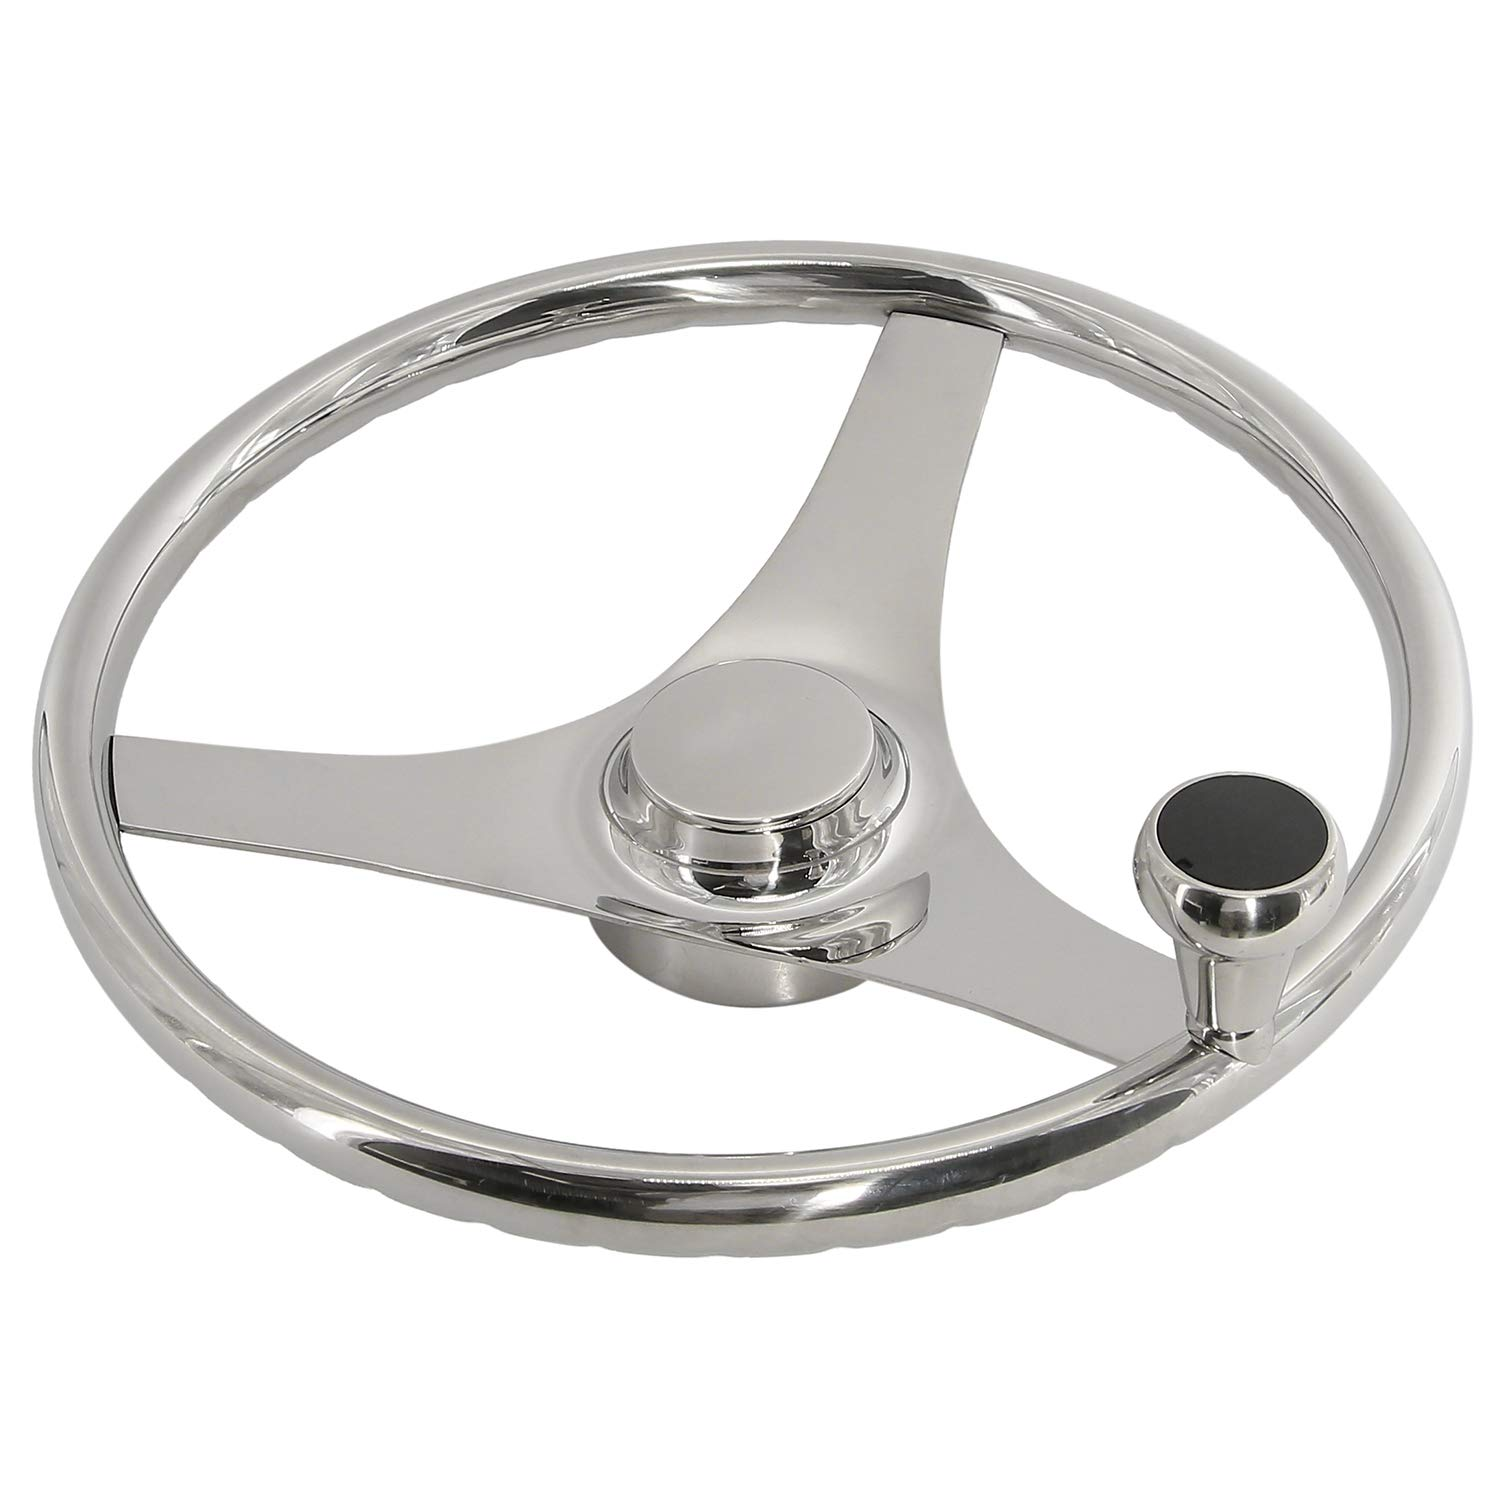 HYDDNice 3 Spoke Stainless Steel 15-1/2'' Boat Steering Wheel with Finger Grip Keyed to fit Standard 3/4'' Taper Shafts (15-1/2'') by HYDDNice